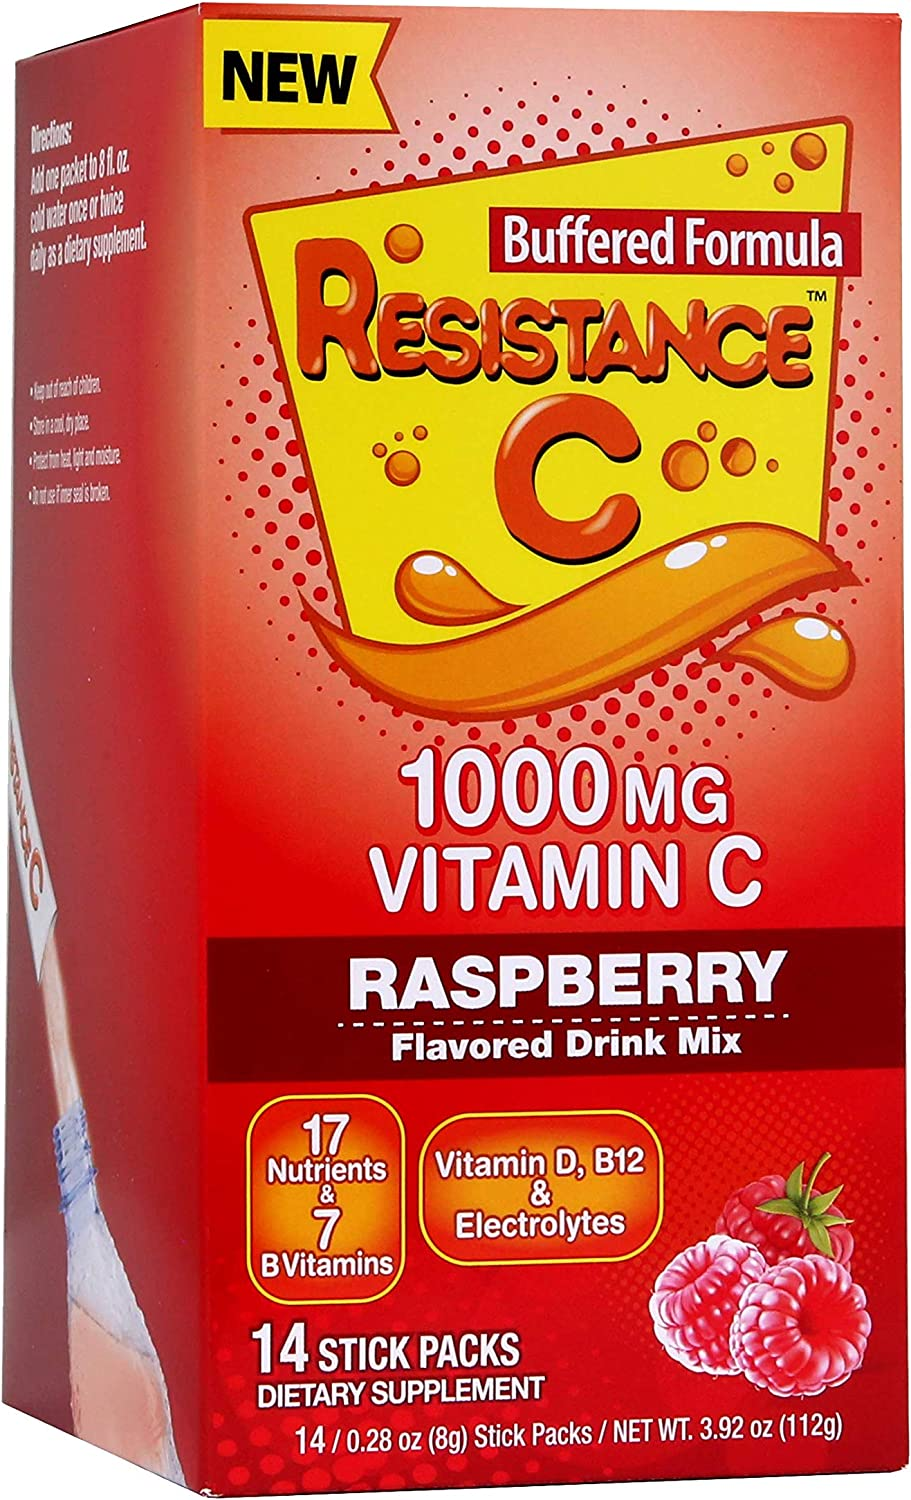 Vitamin C Stick Packs, 16 Nutrients & 7 B-Vitamins, Help Support Immune System, Powerful Antioxidants, Contains Electrolytes, Raspberry Flavor, 14 Stick Packs.